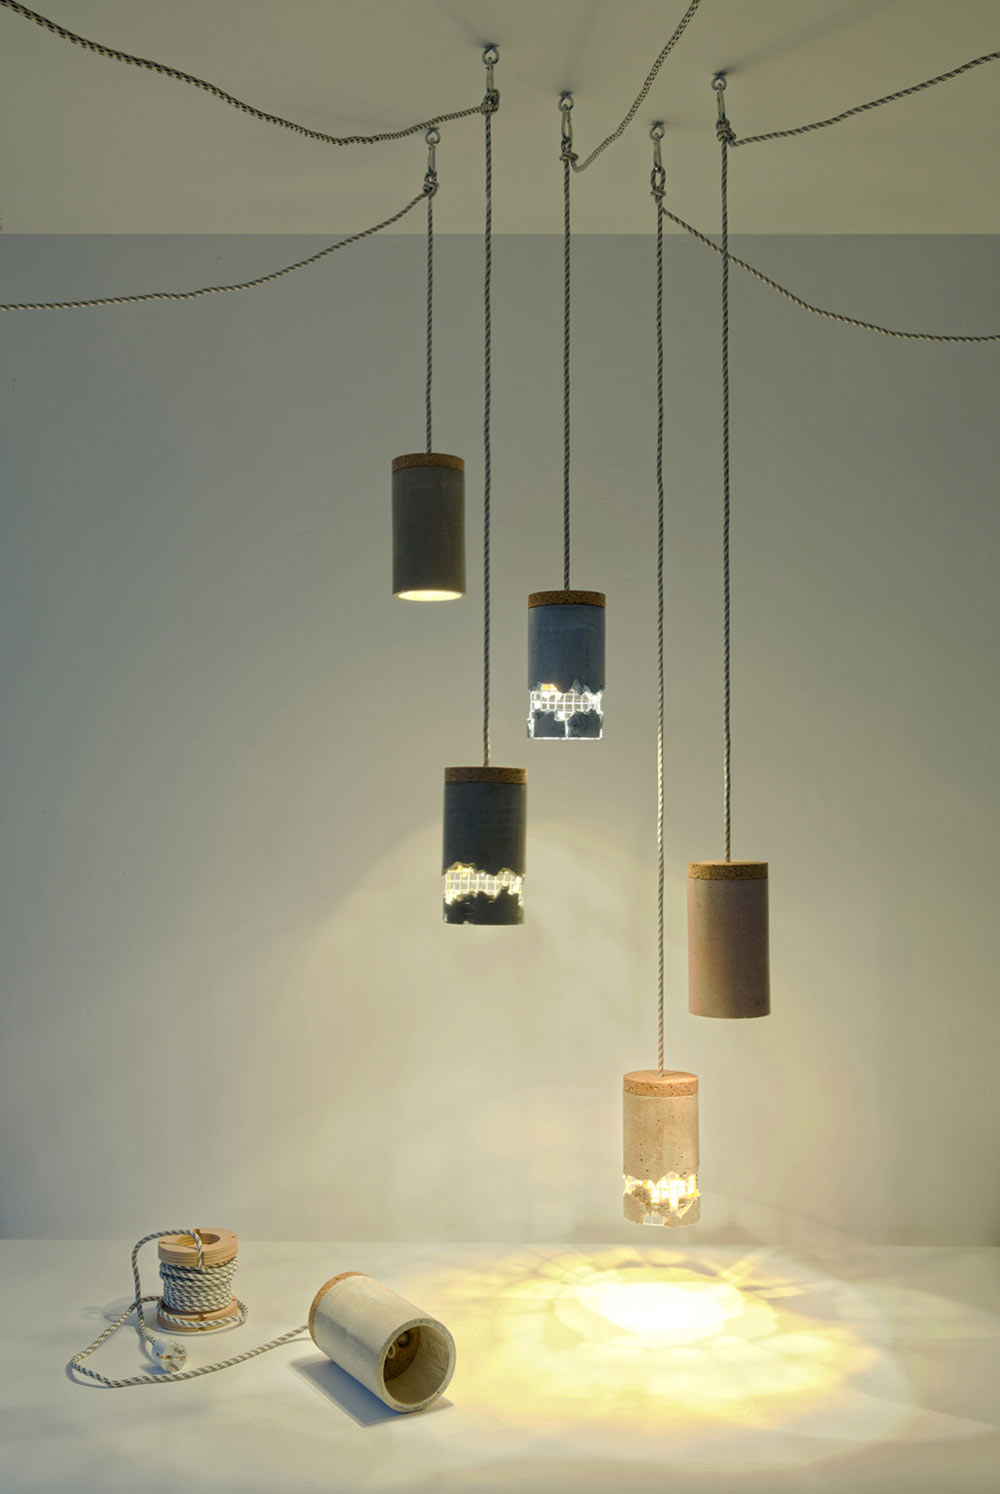 slash-lamp-concrete-lighting-multiple-pendants